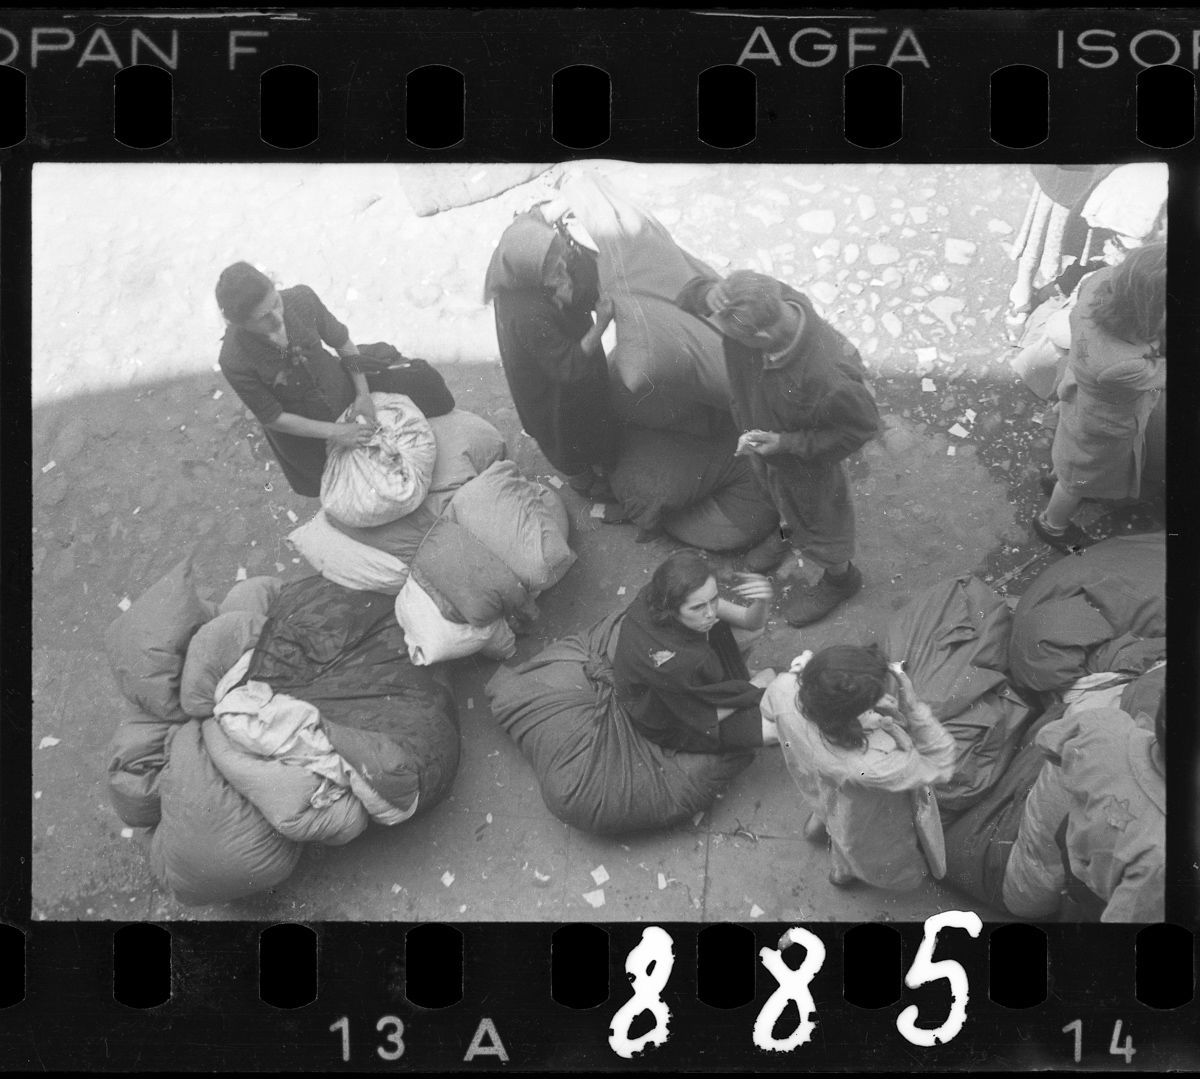 . 1940-1944 Residents sorting belongings left behind after deportation.